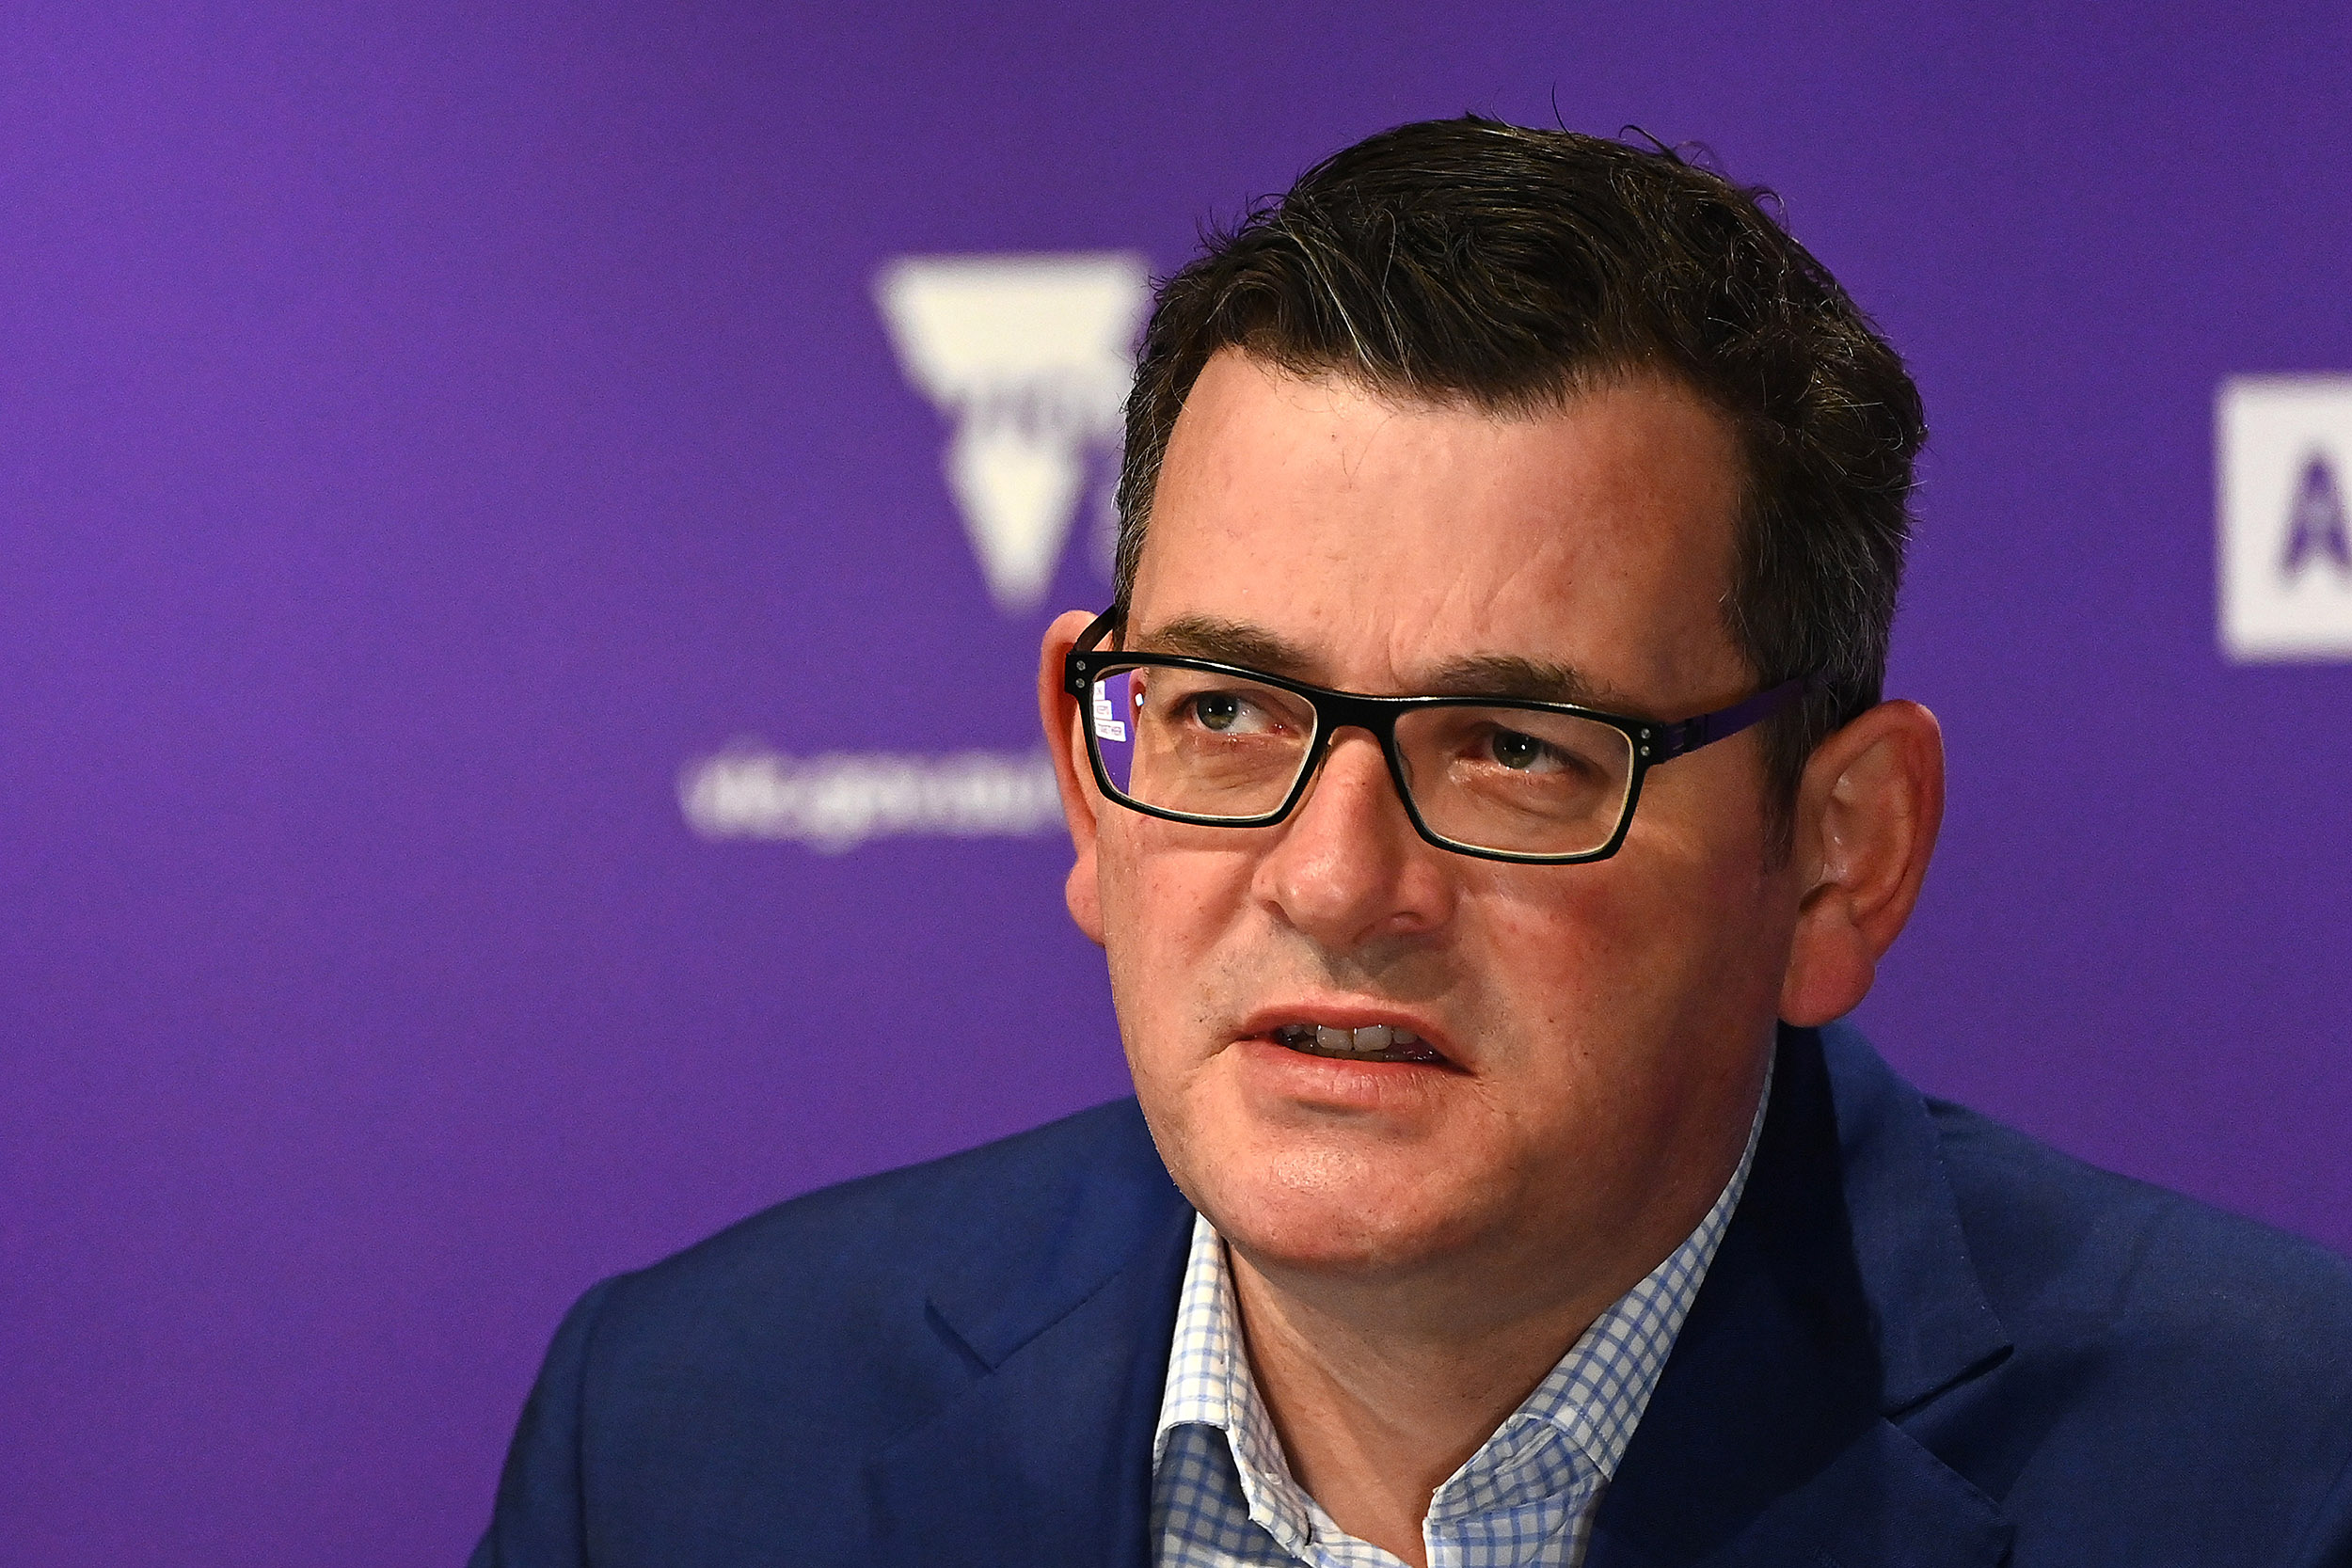 Victorian Premier Daniel Andrews speaks to the media on July 27, in Melbourne, Australia.